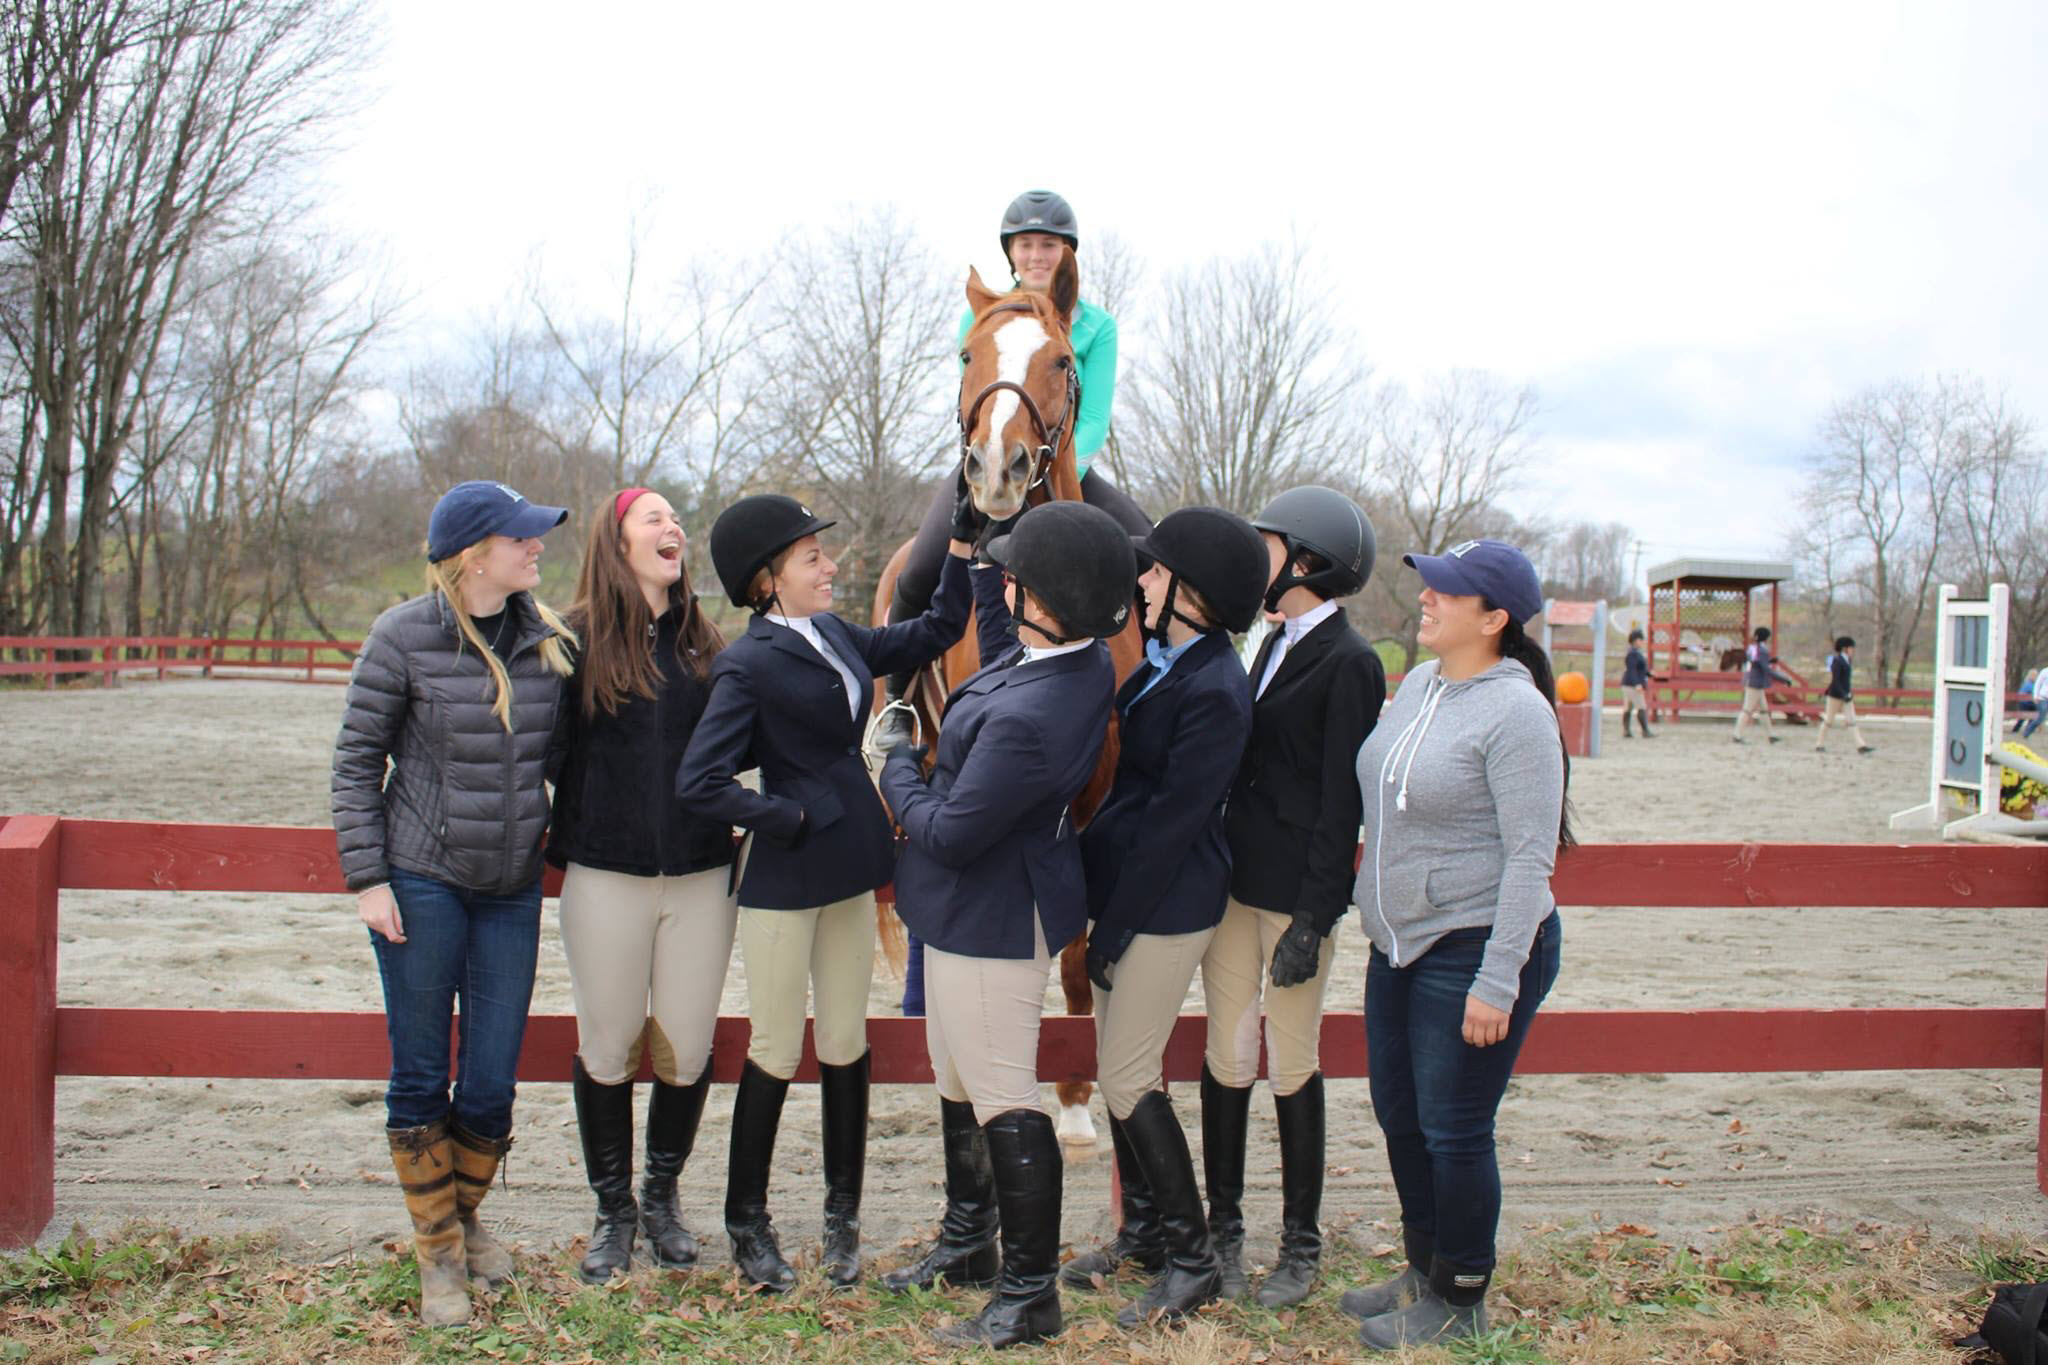 Meadow Creek Farm's Interscholastic Equestrian Association (IEA) Team for 2016